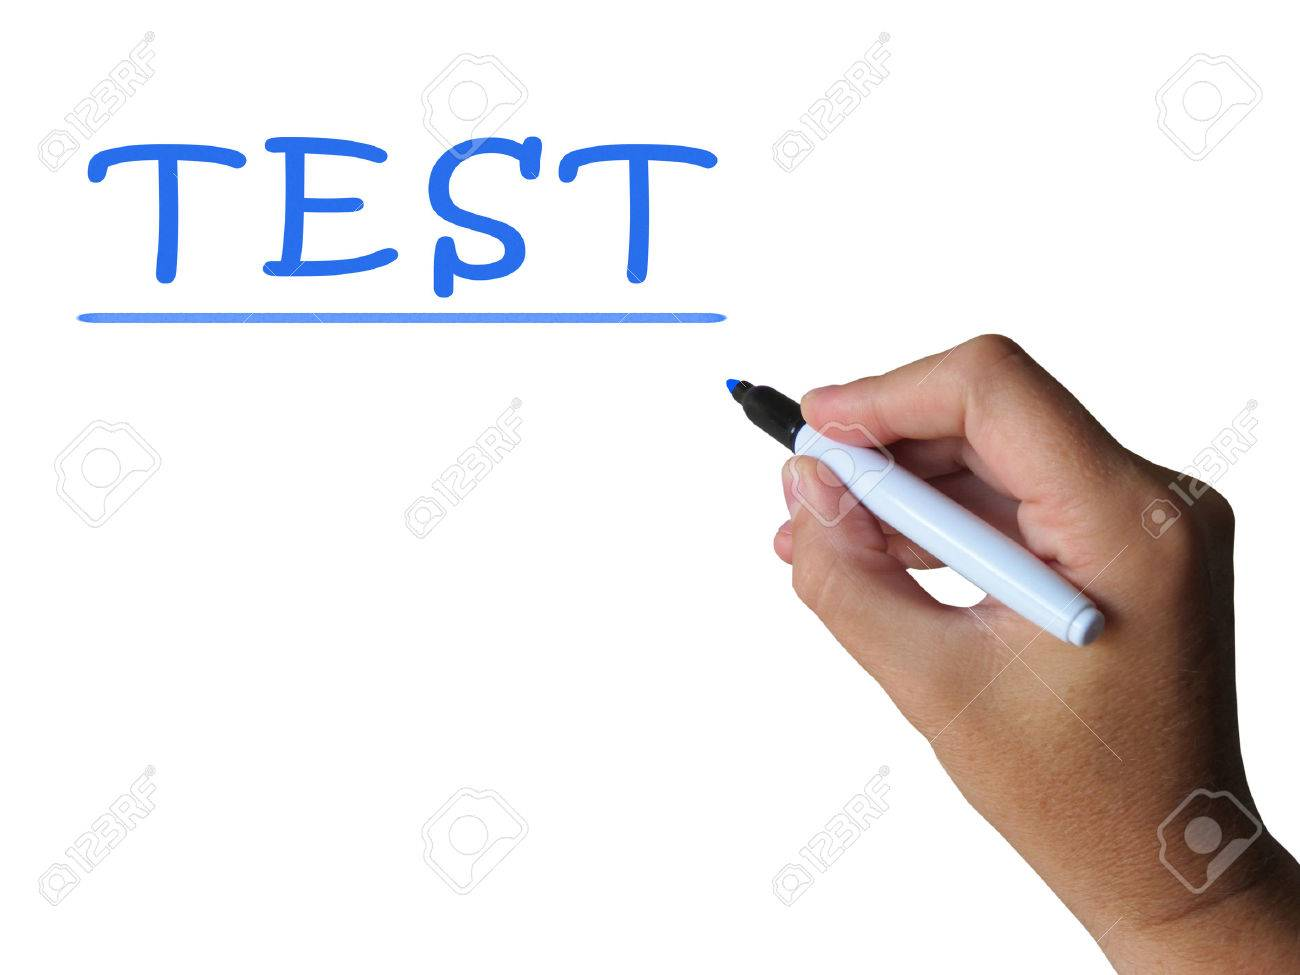 Test Word Meaning Examination Assessment And Mark Stock Photo Picture And Royalty Free Image Image 27900265 Assessment synonyms, assessment pronunciation, assessment translation, english dictionary definition of assessment. test word meaning examination assessment and mark